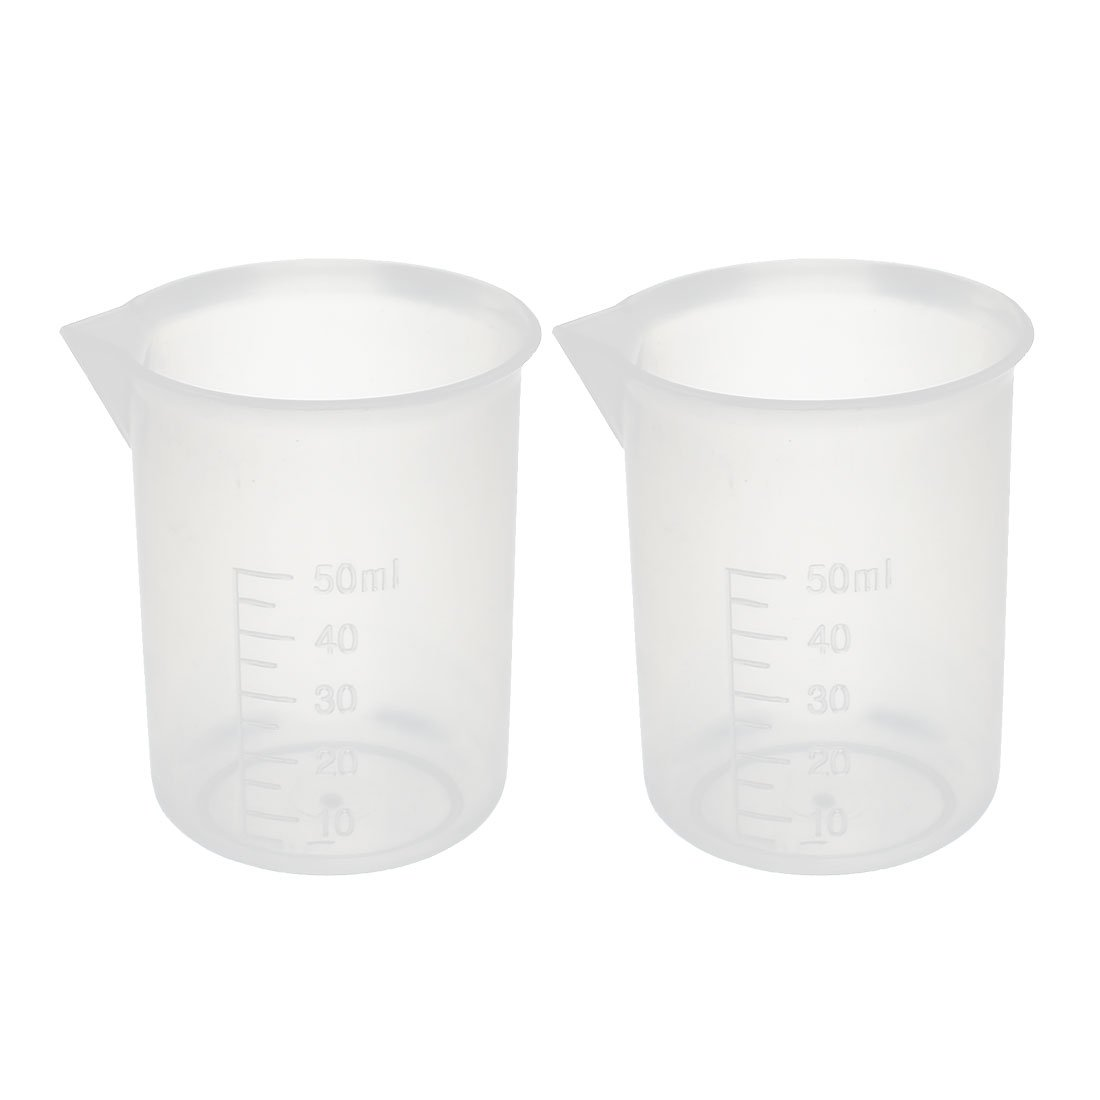 uxcell Free shipping 2pcs Max 56% OFF Kitchen Lab 50mL Clear Cup Pou Plastic Measuring Jug